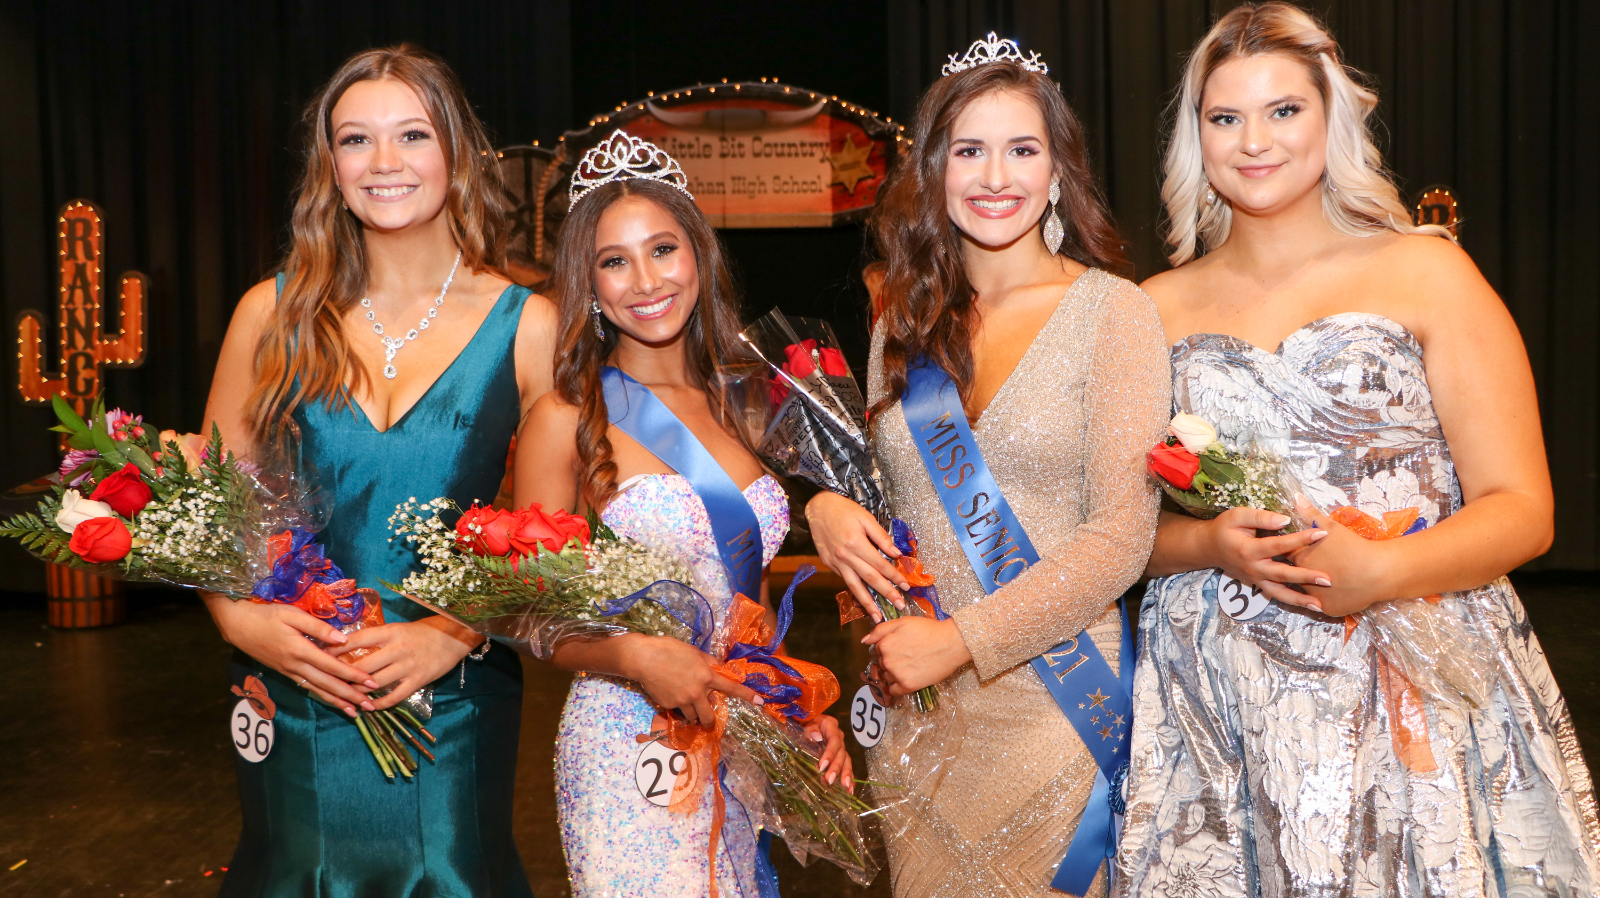 3.27.2021 (PHOTO GALLERY): 2021 Miss Hanahan Pageant – Photos by Cyril Samonte